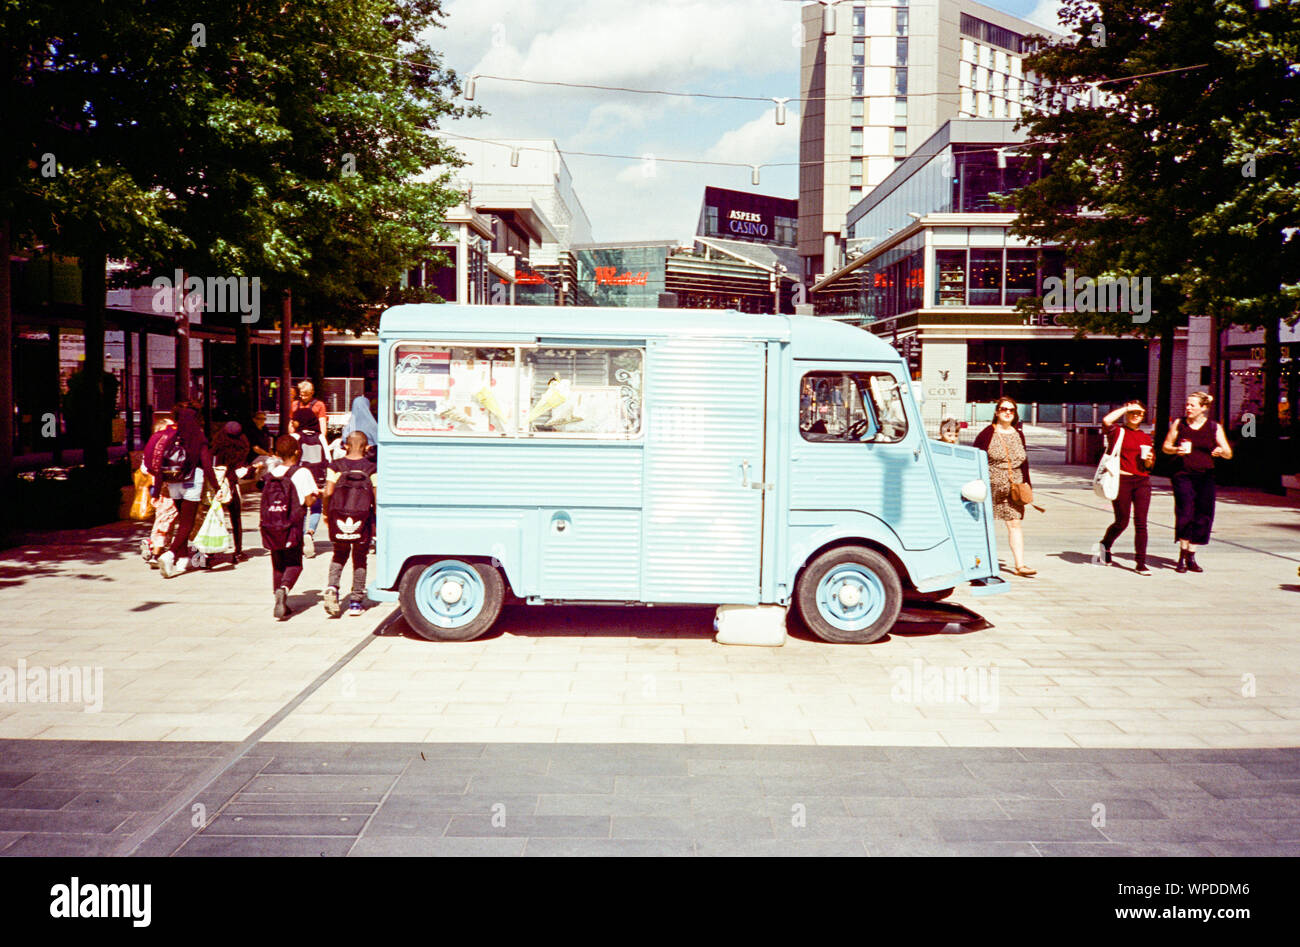 Retro ice cream van outside Westfield Shopping centre , Stratford, London, England, United Kingdom. Stock Photo